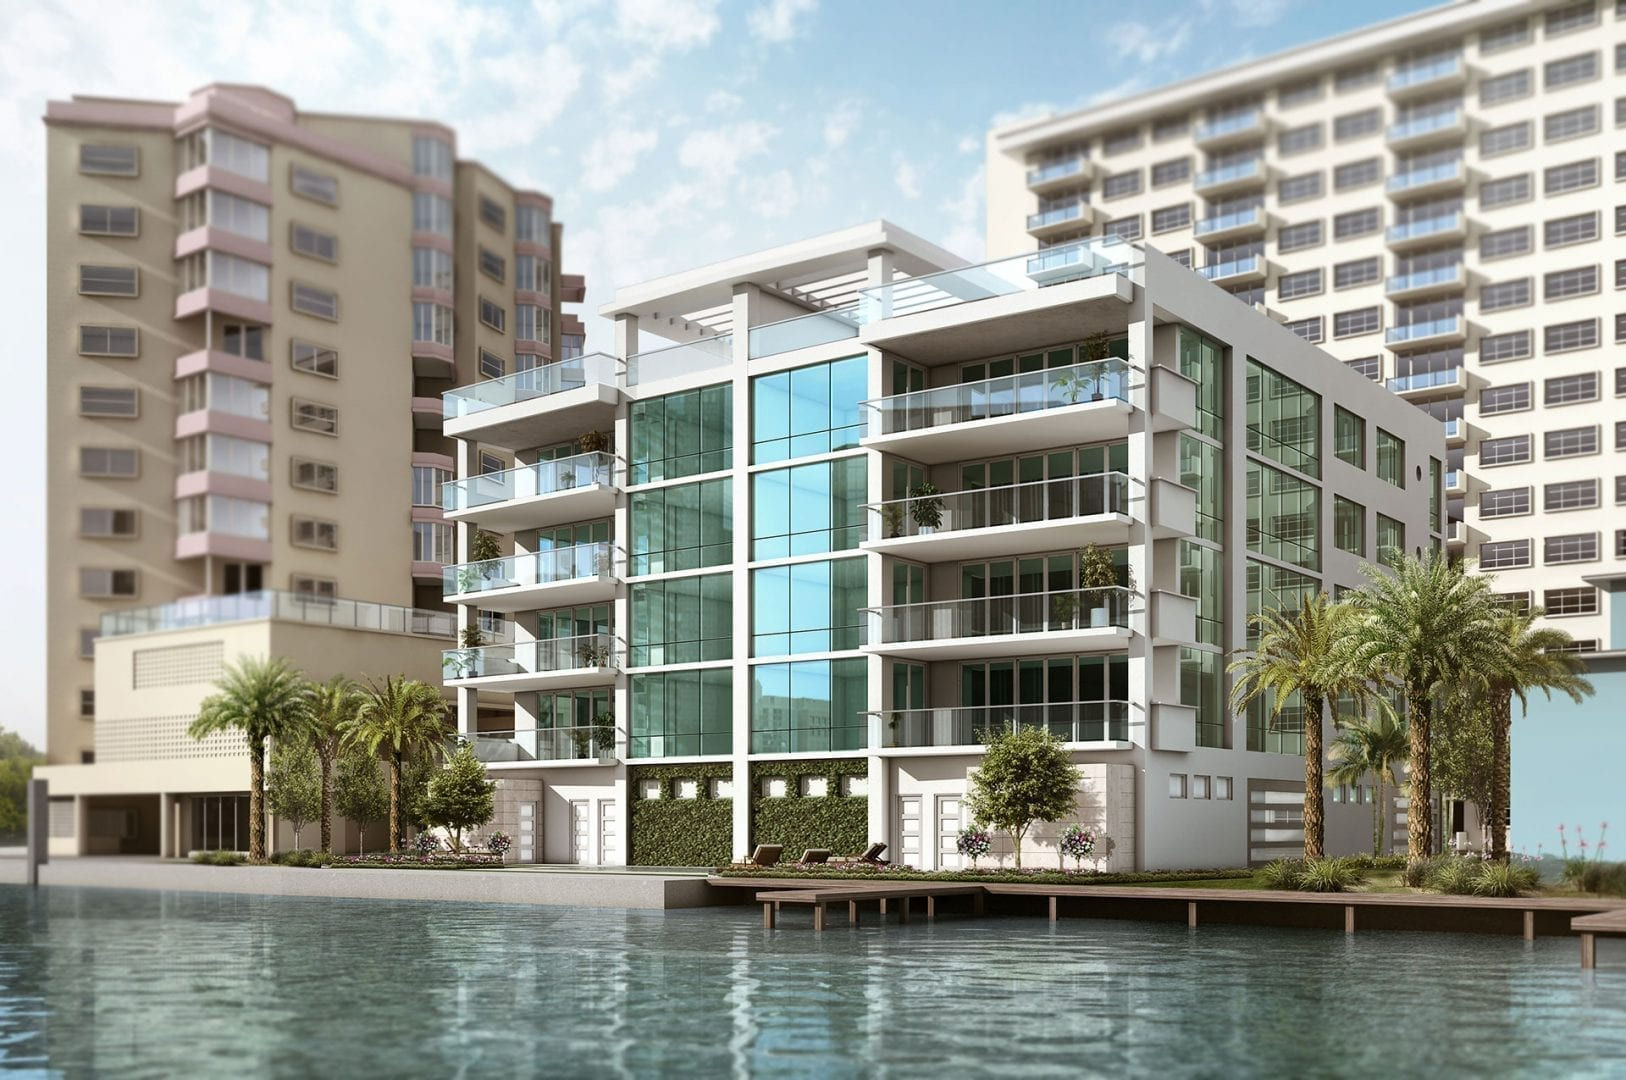 353 Sunset Lake Condos by Robert M. Swedroe Architecture Miami